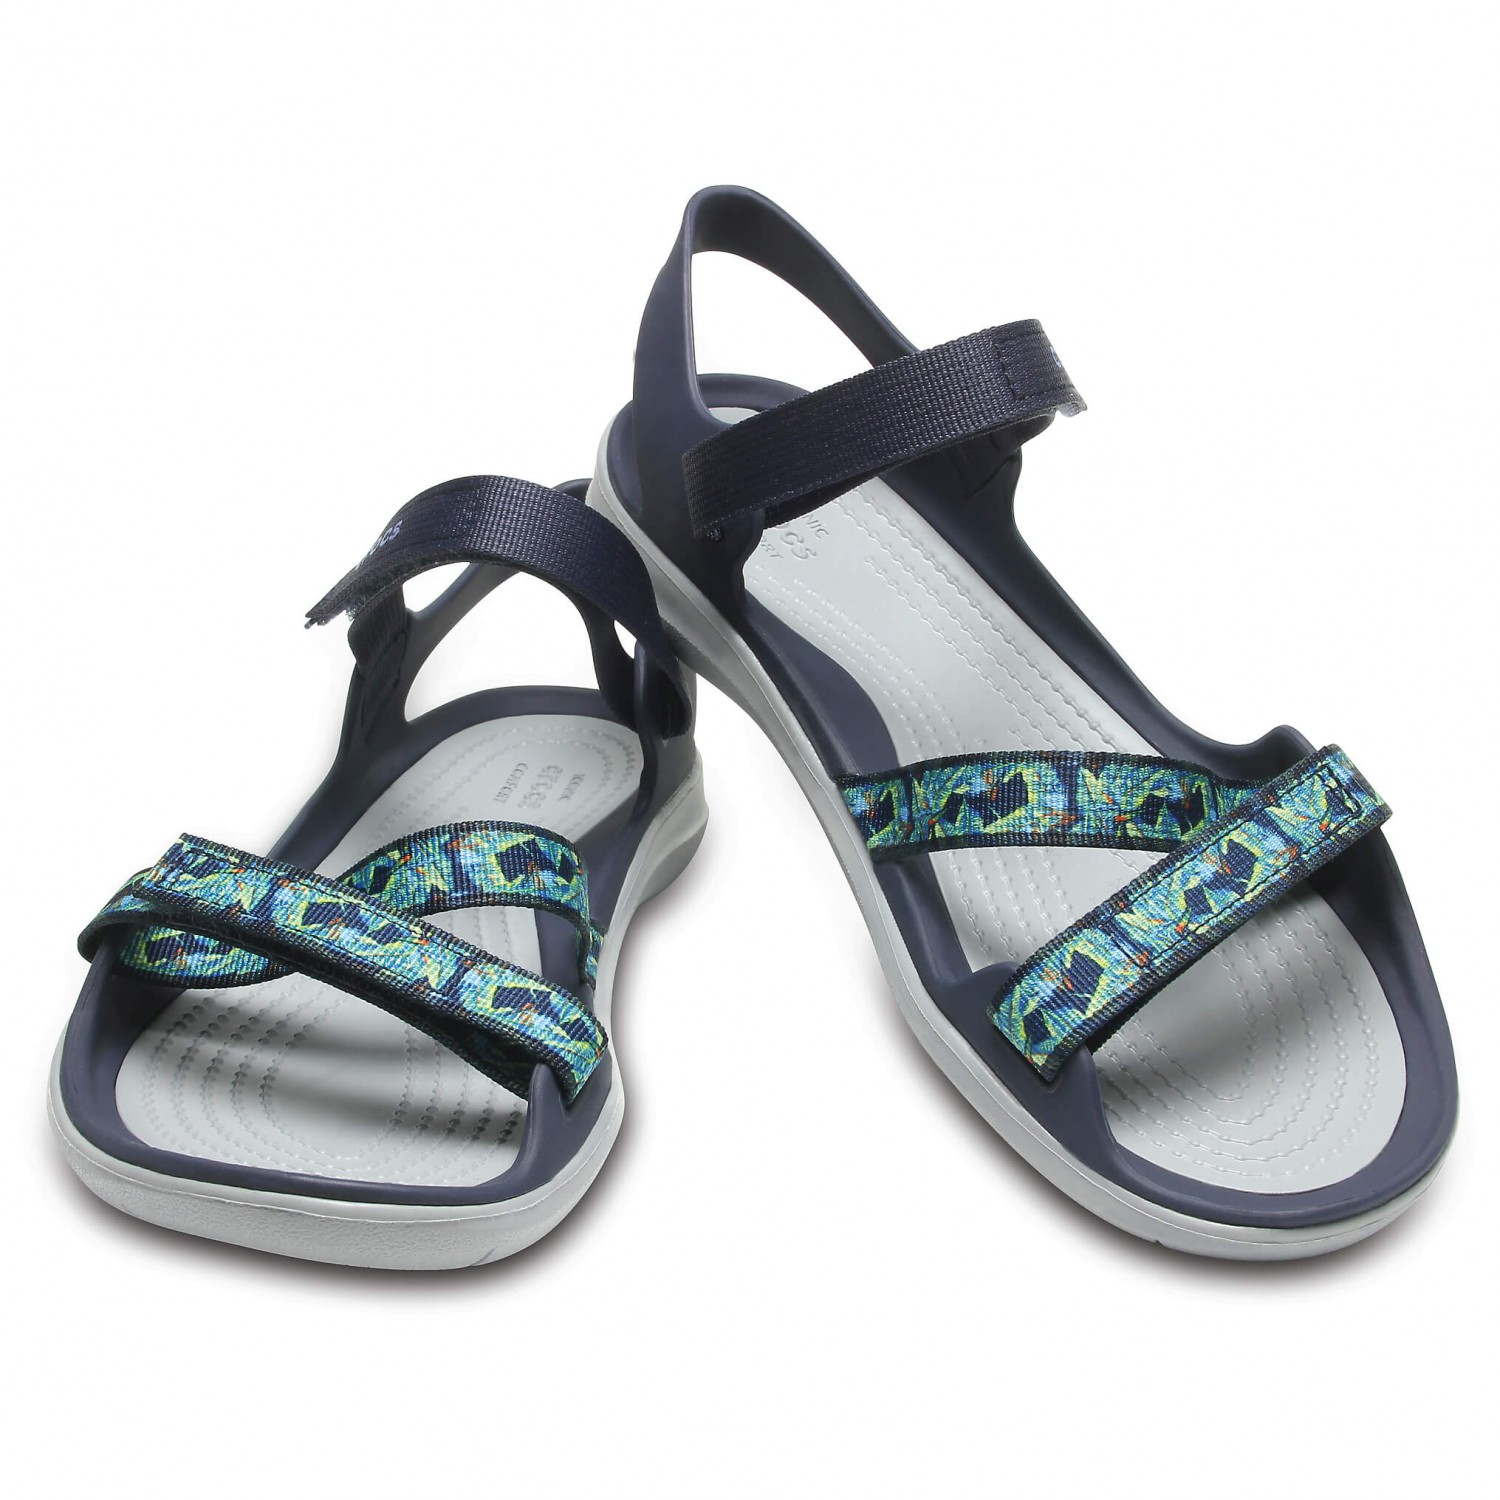 e4ecd9b36f5b2 Crocs - Women's Swiftwater Webbing Sandal - Sandals - Pool / White | W5 (US)